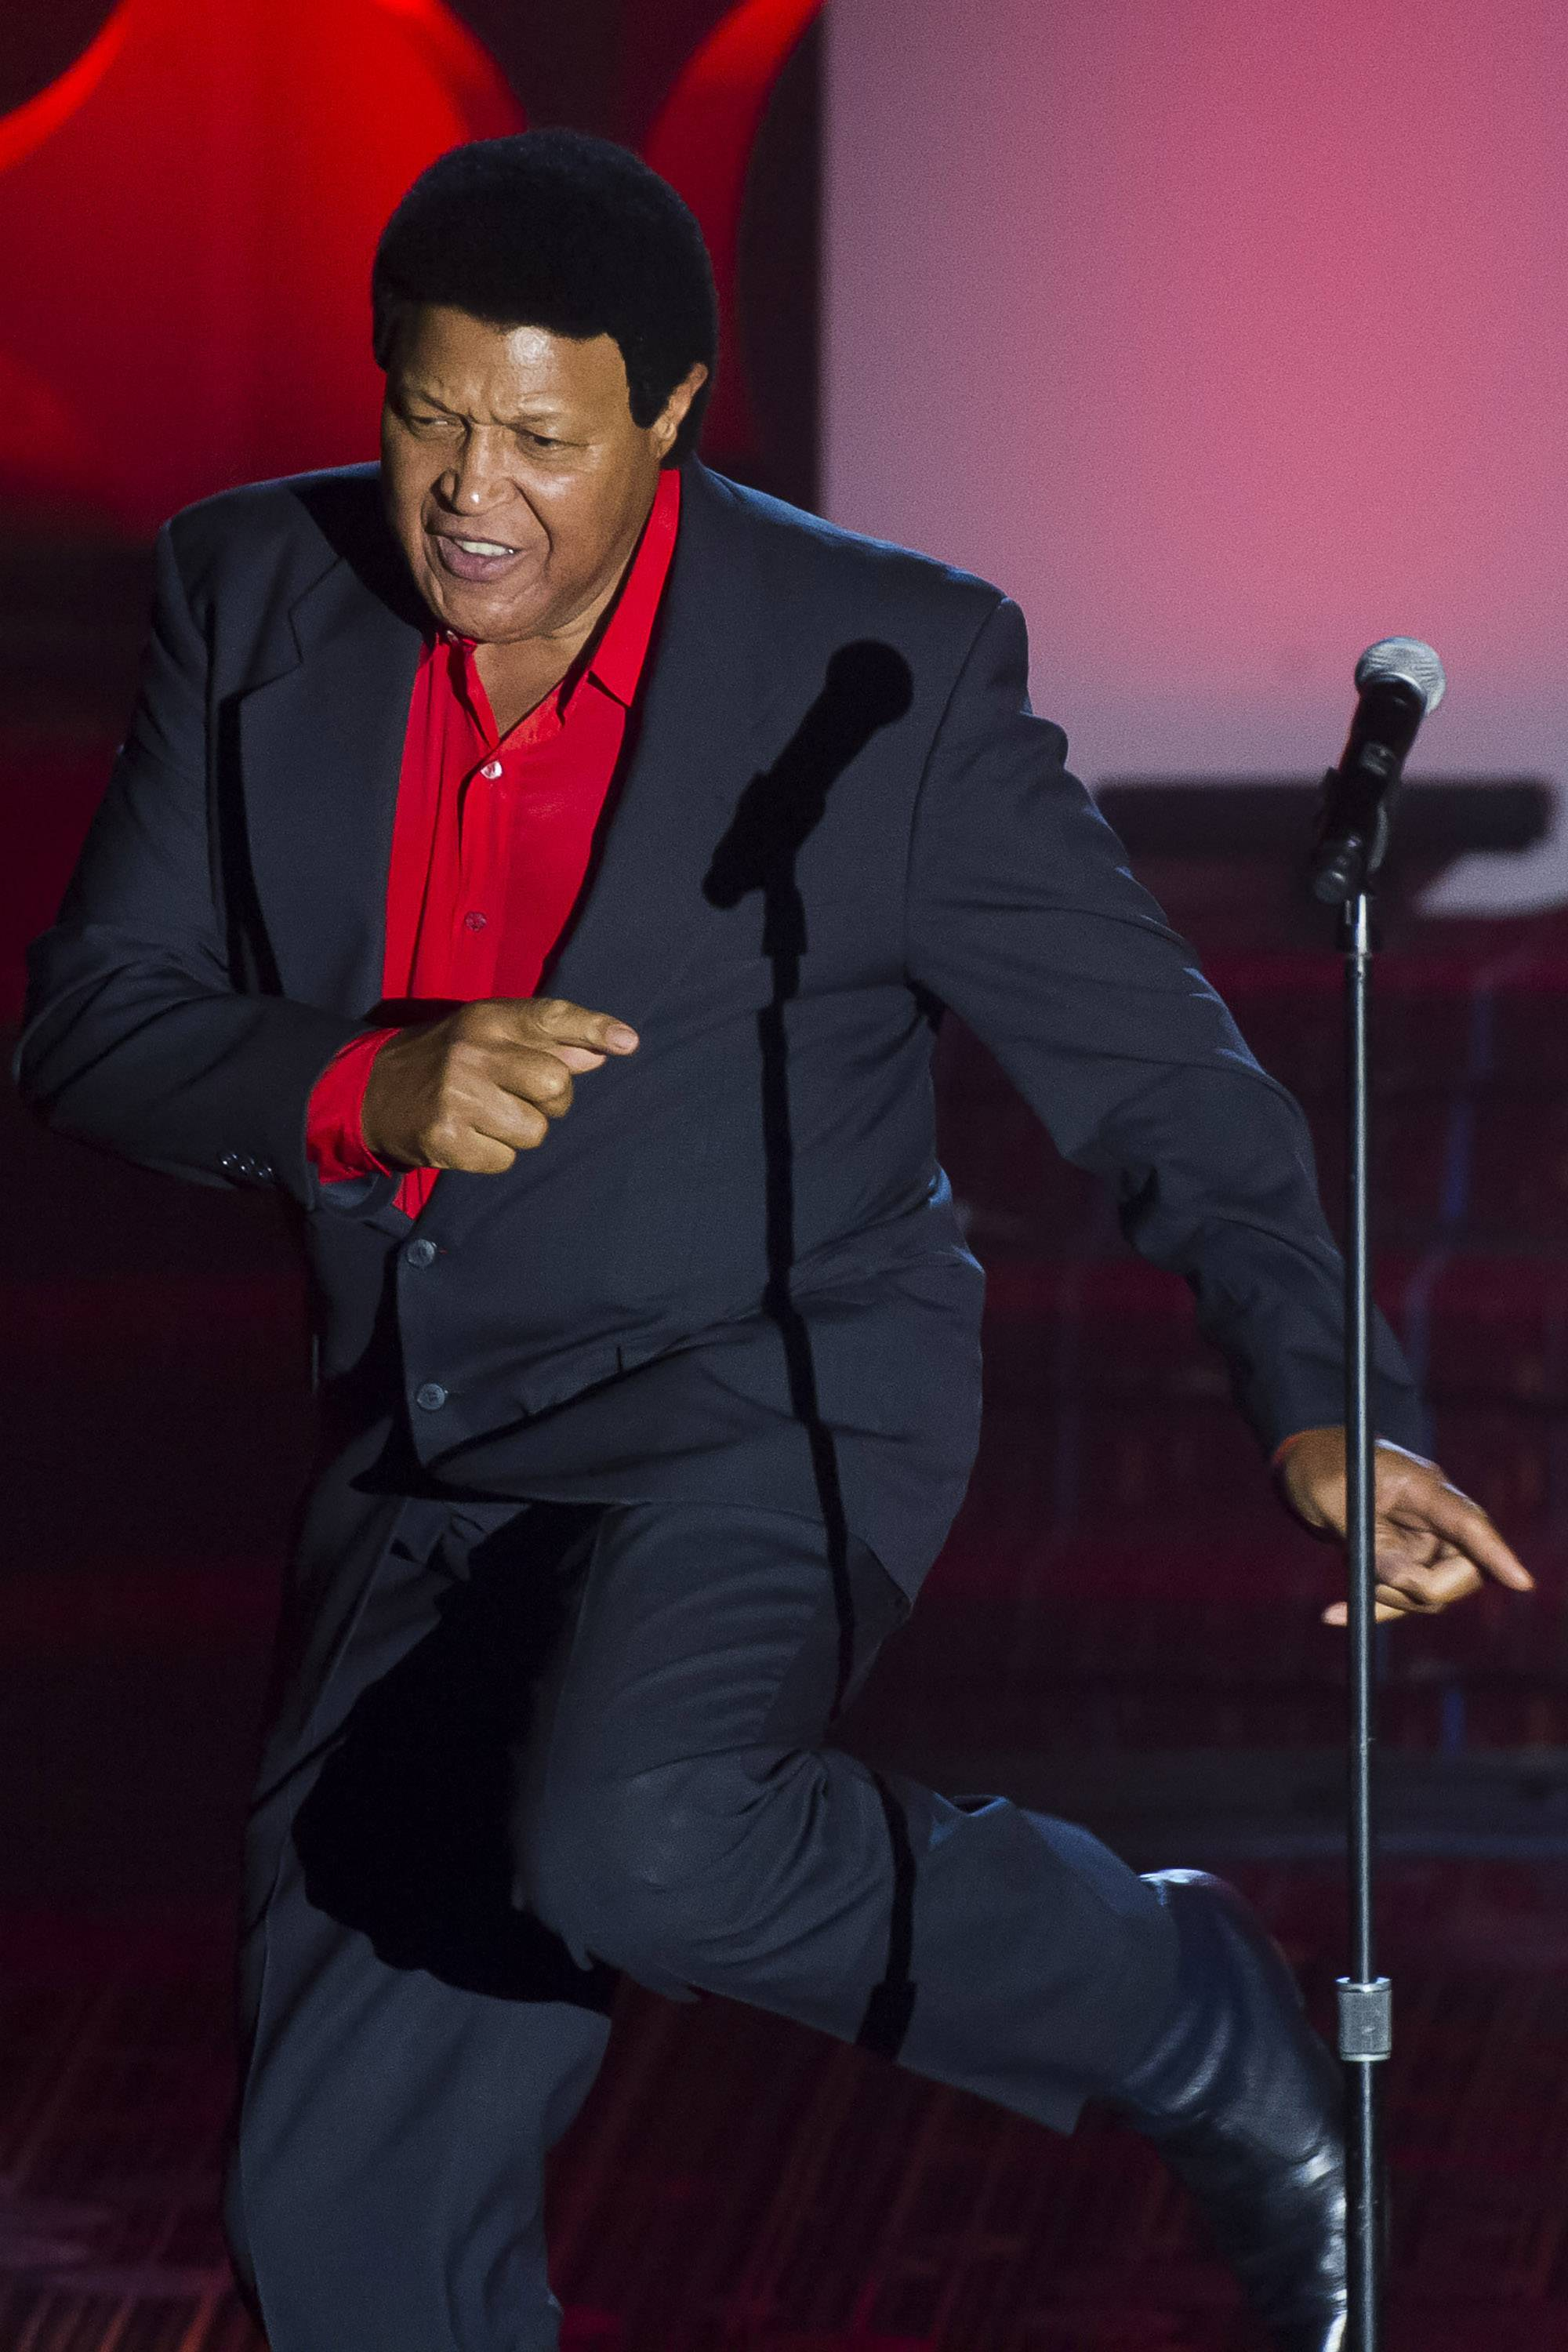 Chubby Checker wants the Rock and Roll Hall of Fame to know it's time to induct him into their exclusive club before it's too late.